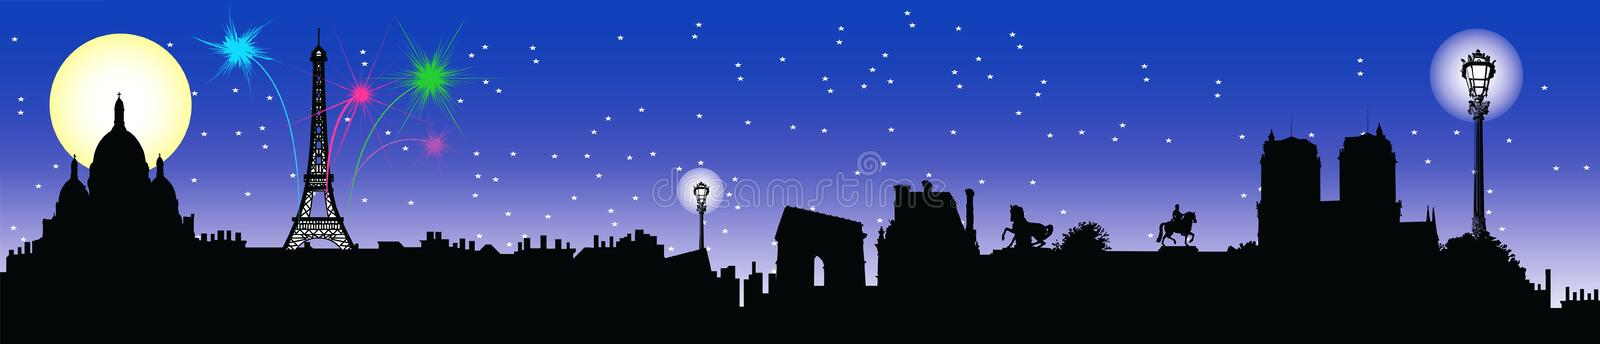 Download Paris night skyline stock illustration. Image of cathedral - 5926392